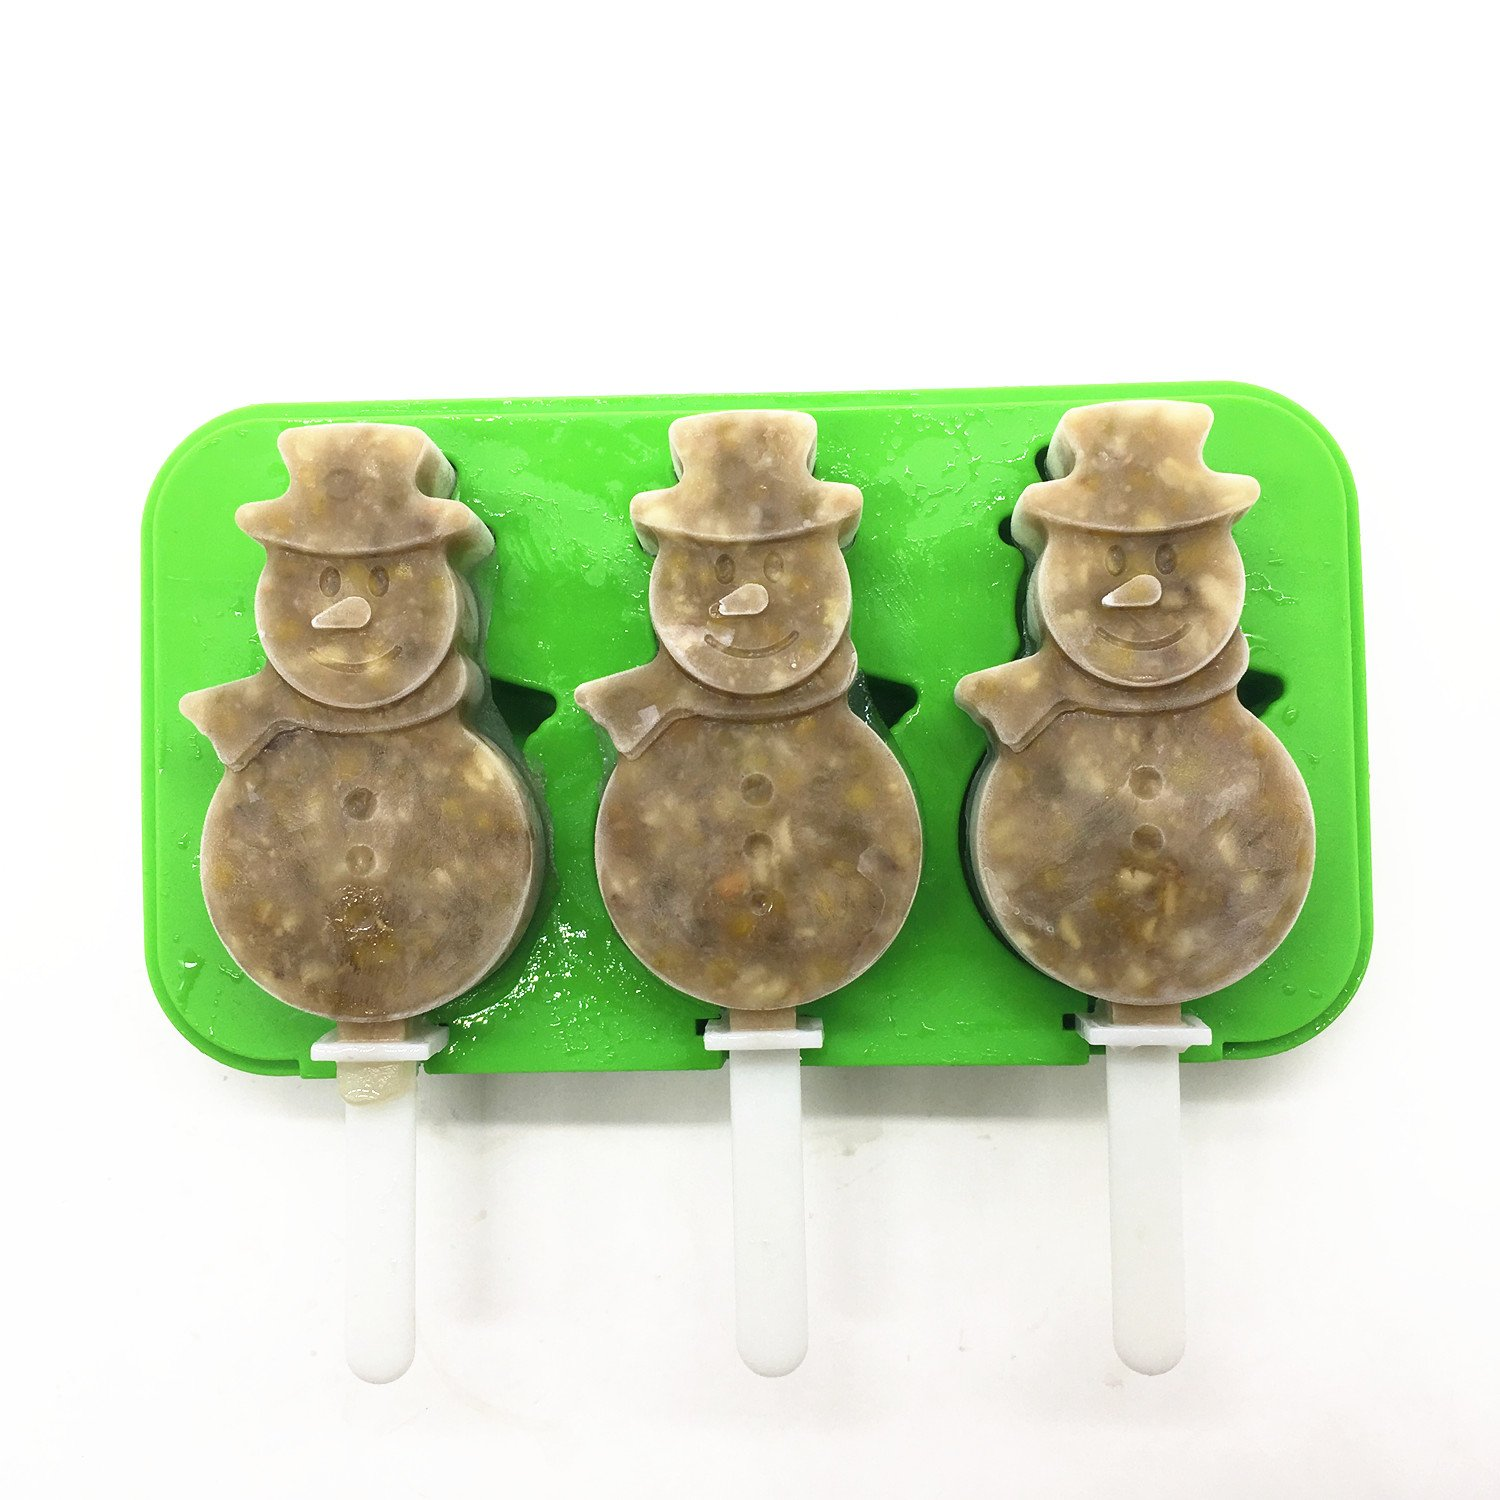 f4705101908a9 ... Helpcook Silicone Ice Pop Molds Set